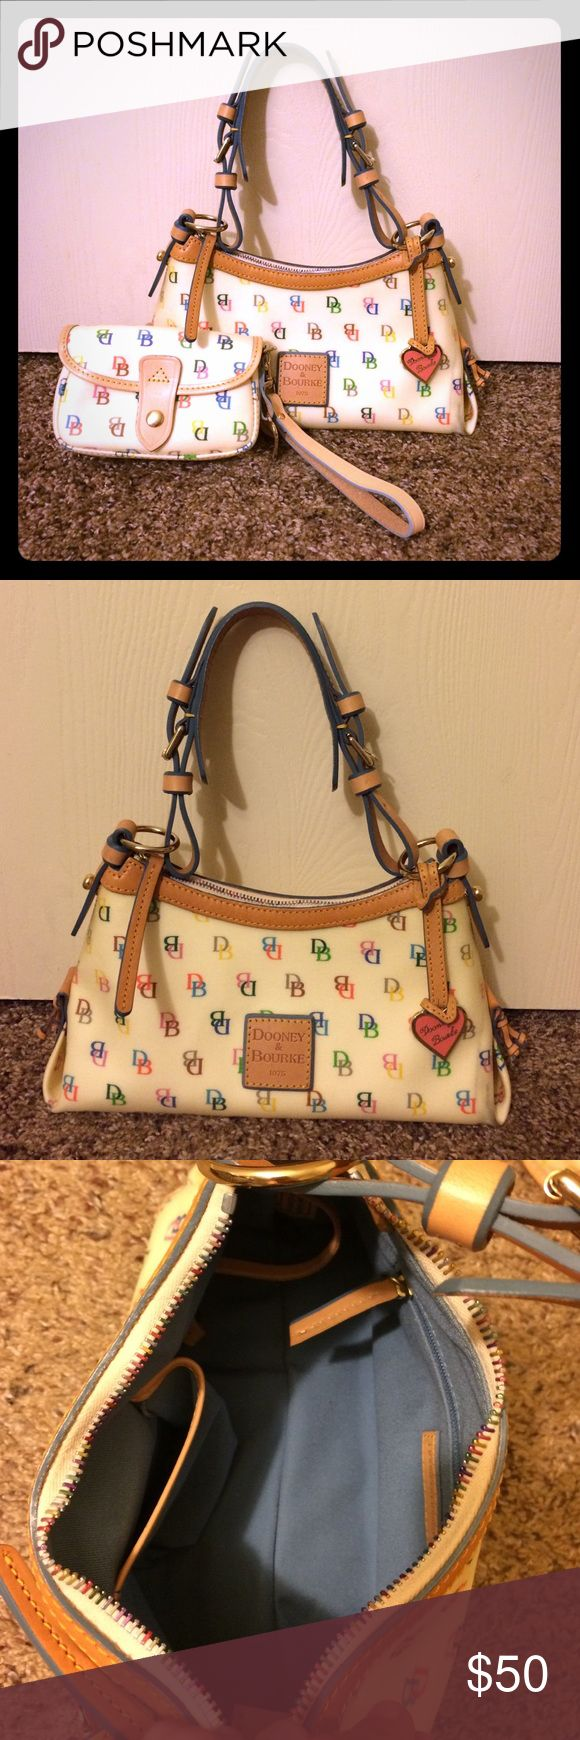 "Authentic Dooney & Bourke purse and wristlet 100% authentic! Purse is in excellent like new condition except for a dark mark on the right hand corner(shown in picture). The inside is pristine! The wristlets is in absolute pristine condition. Has original tag with it. Comes from a smoke free home, no odors. Both are beautiful pieces! Bundles are discounted! Purse dimensions are 11"" wide and 6"" tall. Wristlet is 6"" wide and 4"" tall. Dooney & Bourke Bags"